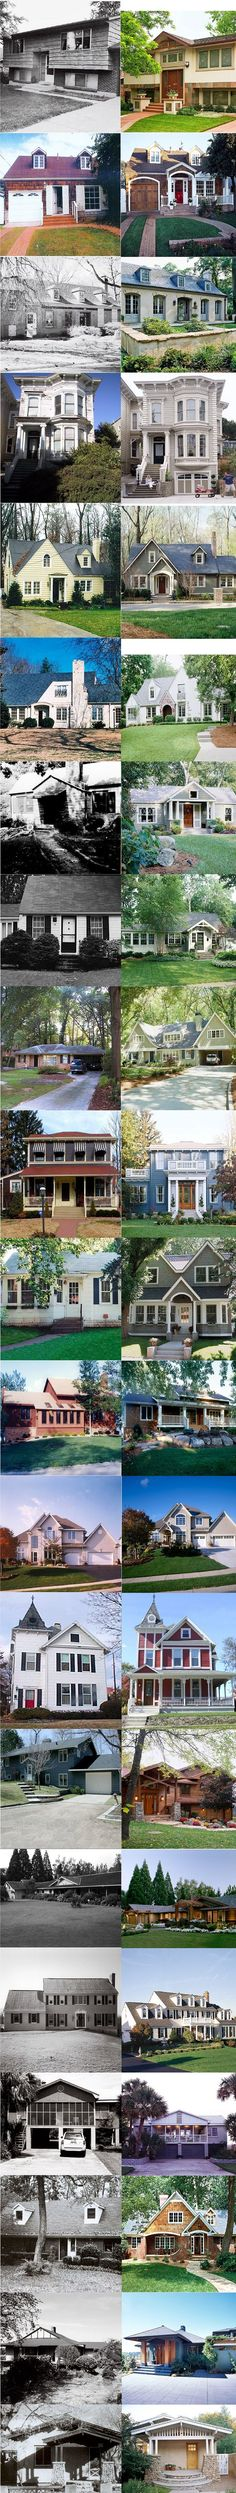 http://www.bhg.com/home-improvement/exteriors/curb-appeal/before-and-after-home-exteriors/#page=1